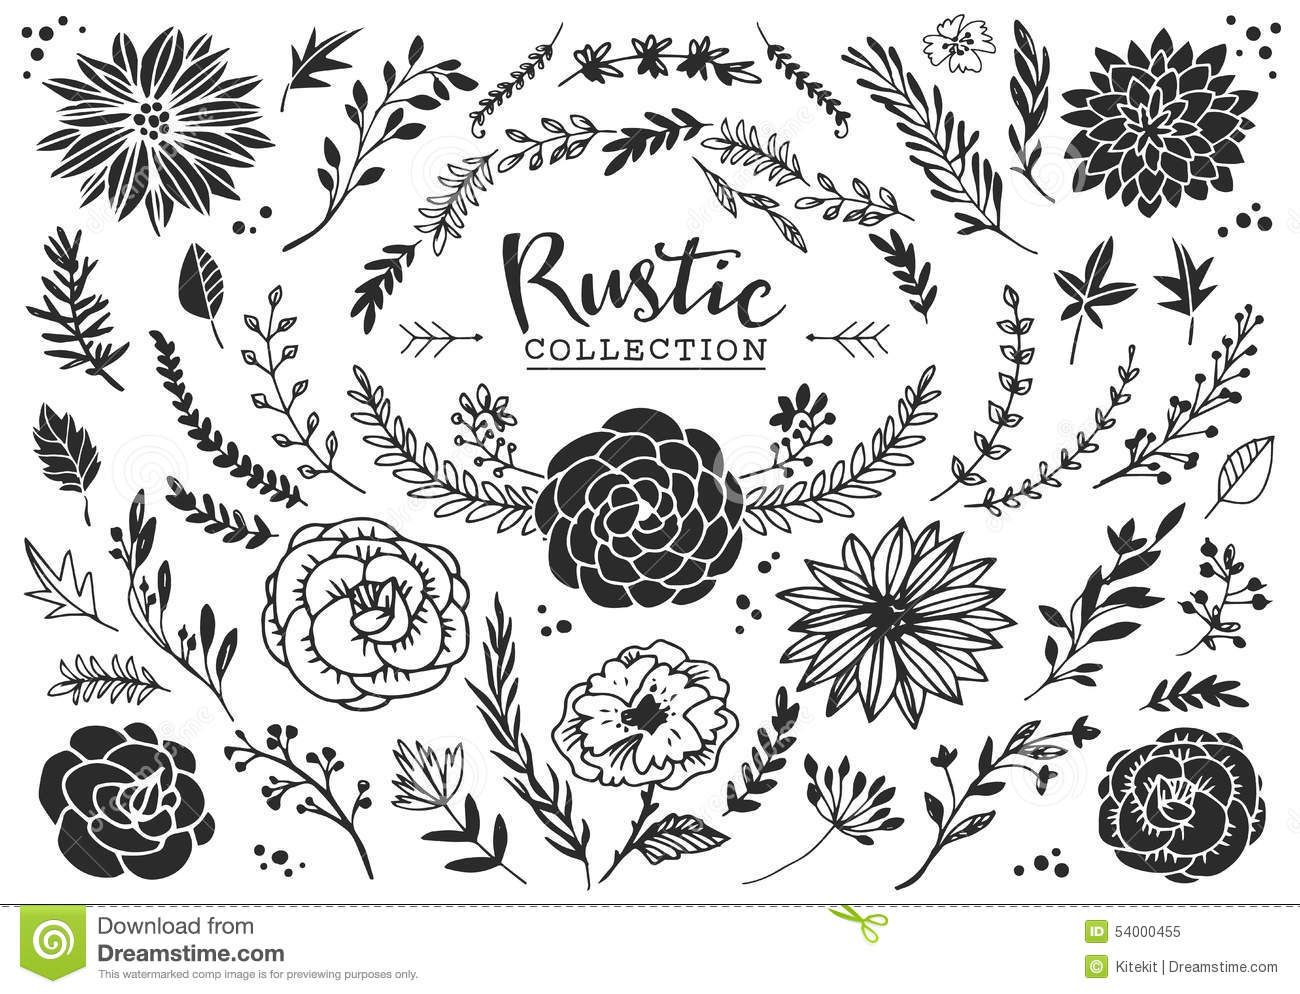 Rustic Banner Clip Art Vector Images Gallery